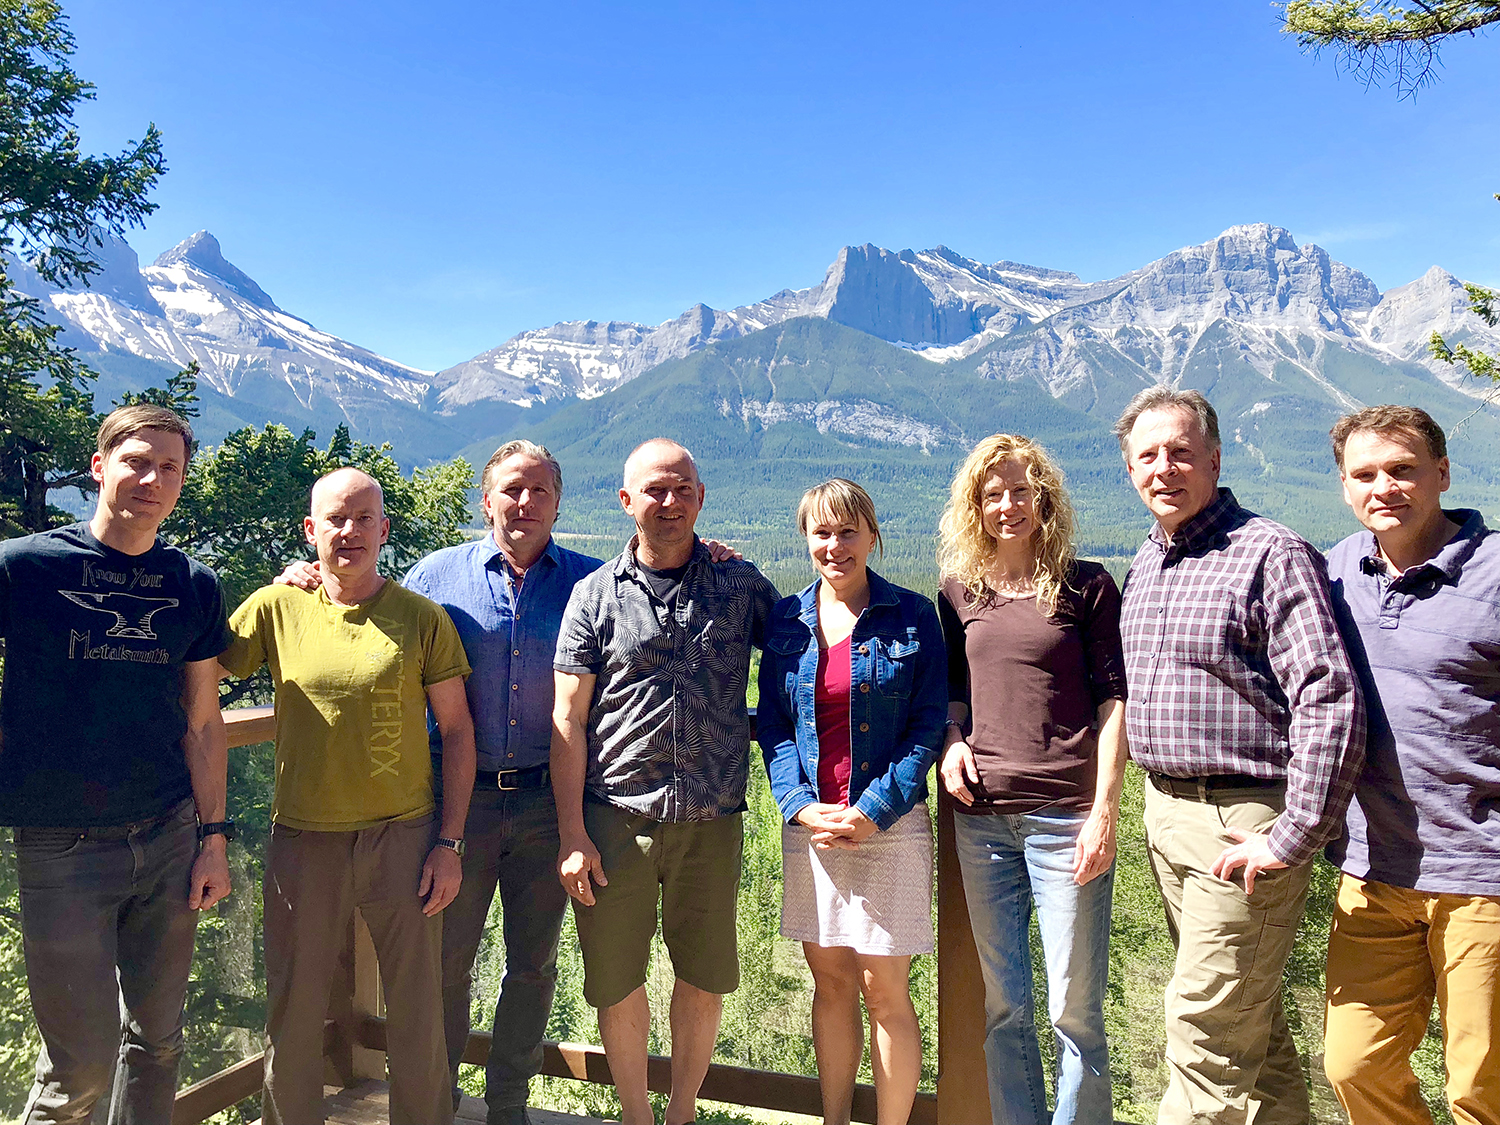 Left to right: Toby Harper-Merrett (ACC VP Sections), Frank Spears (ACC VP Activities), Neil Bosch (ACC President), Mike Wild (Great Plains Section President), Isabell Daigneault (ACC Secretary) Lael Parrott (ACC VP Environment), David Foster (ACC VP Services), Keith Sanford (ACC Treasurer)